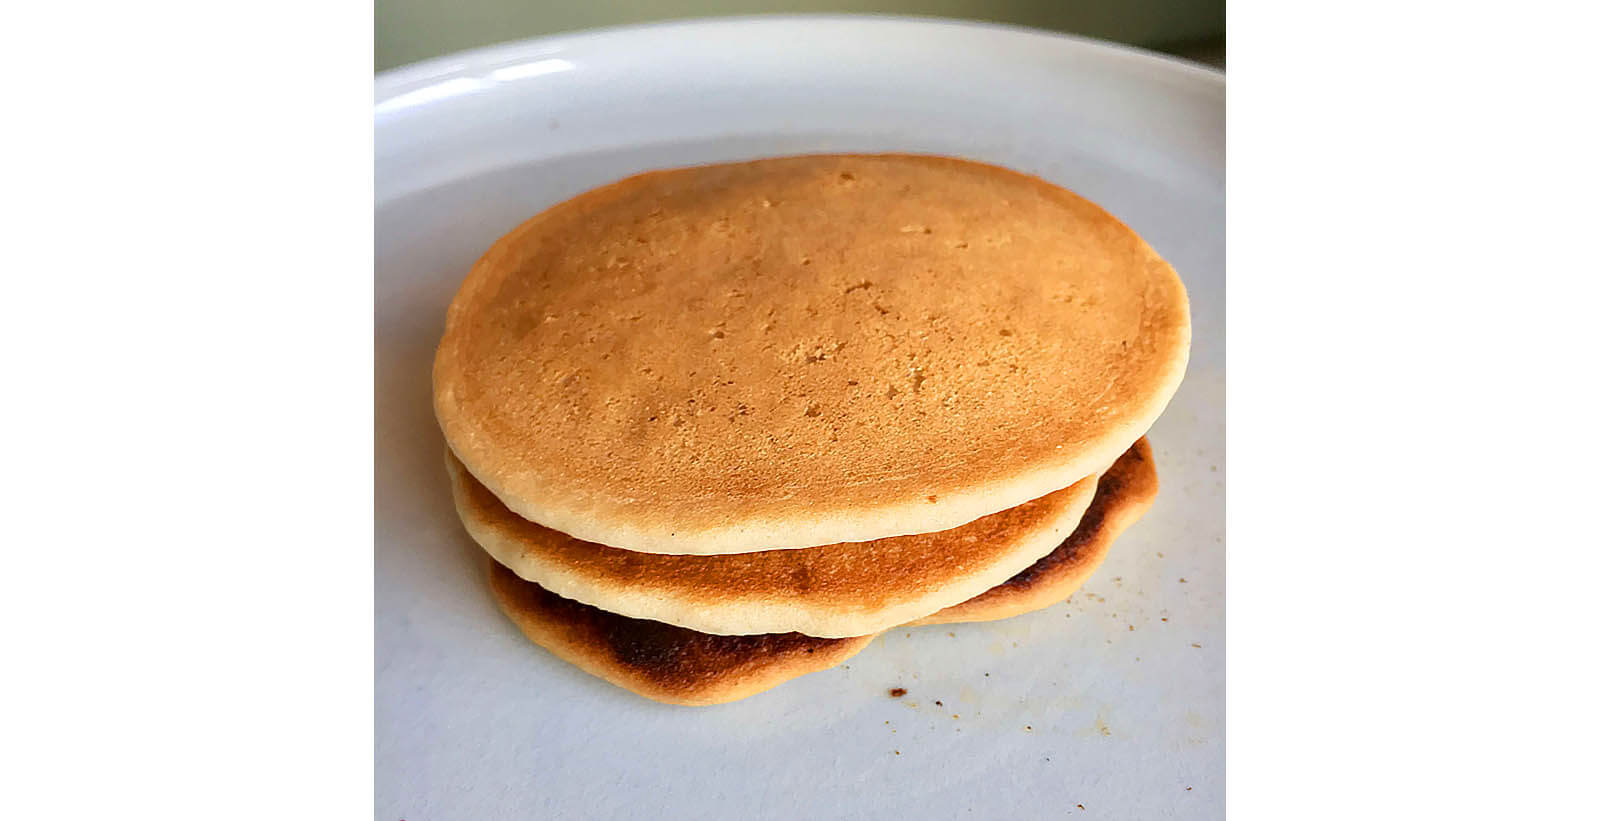 Fluffy hotcakes without using a mold